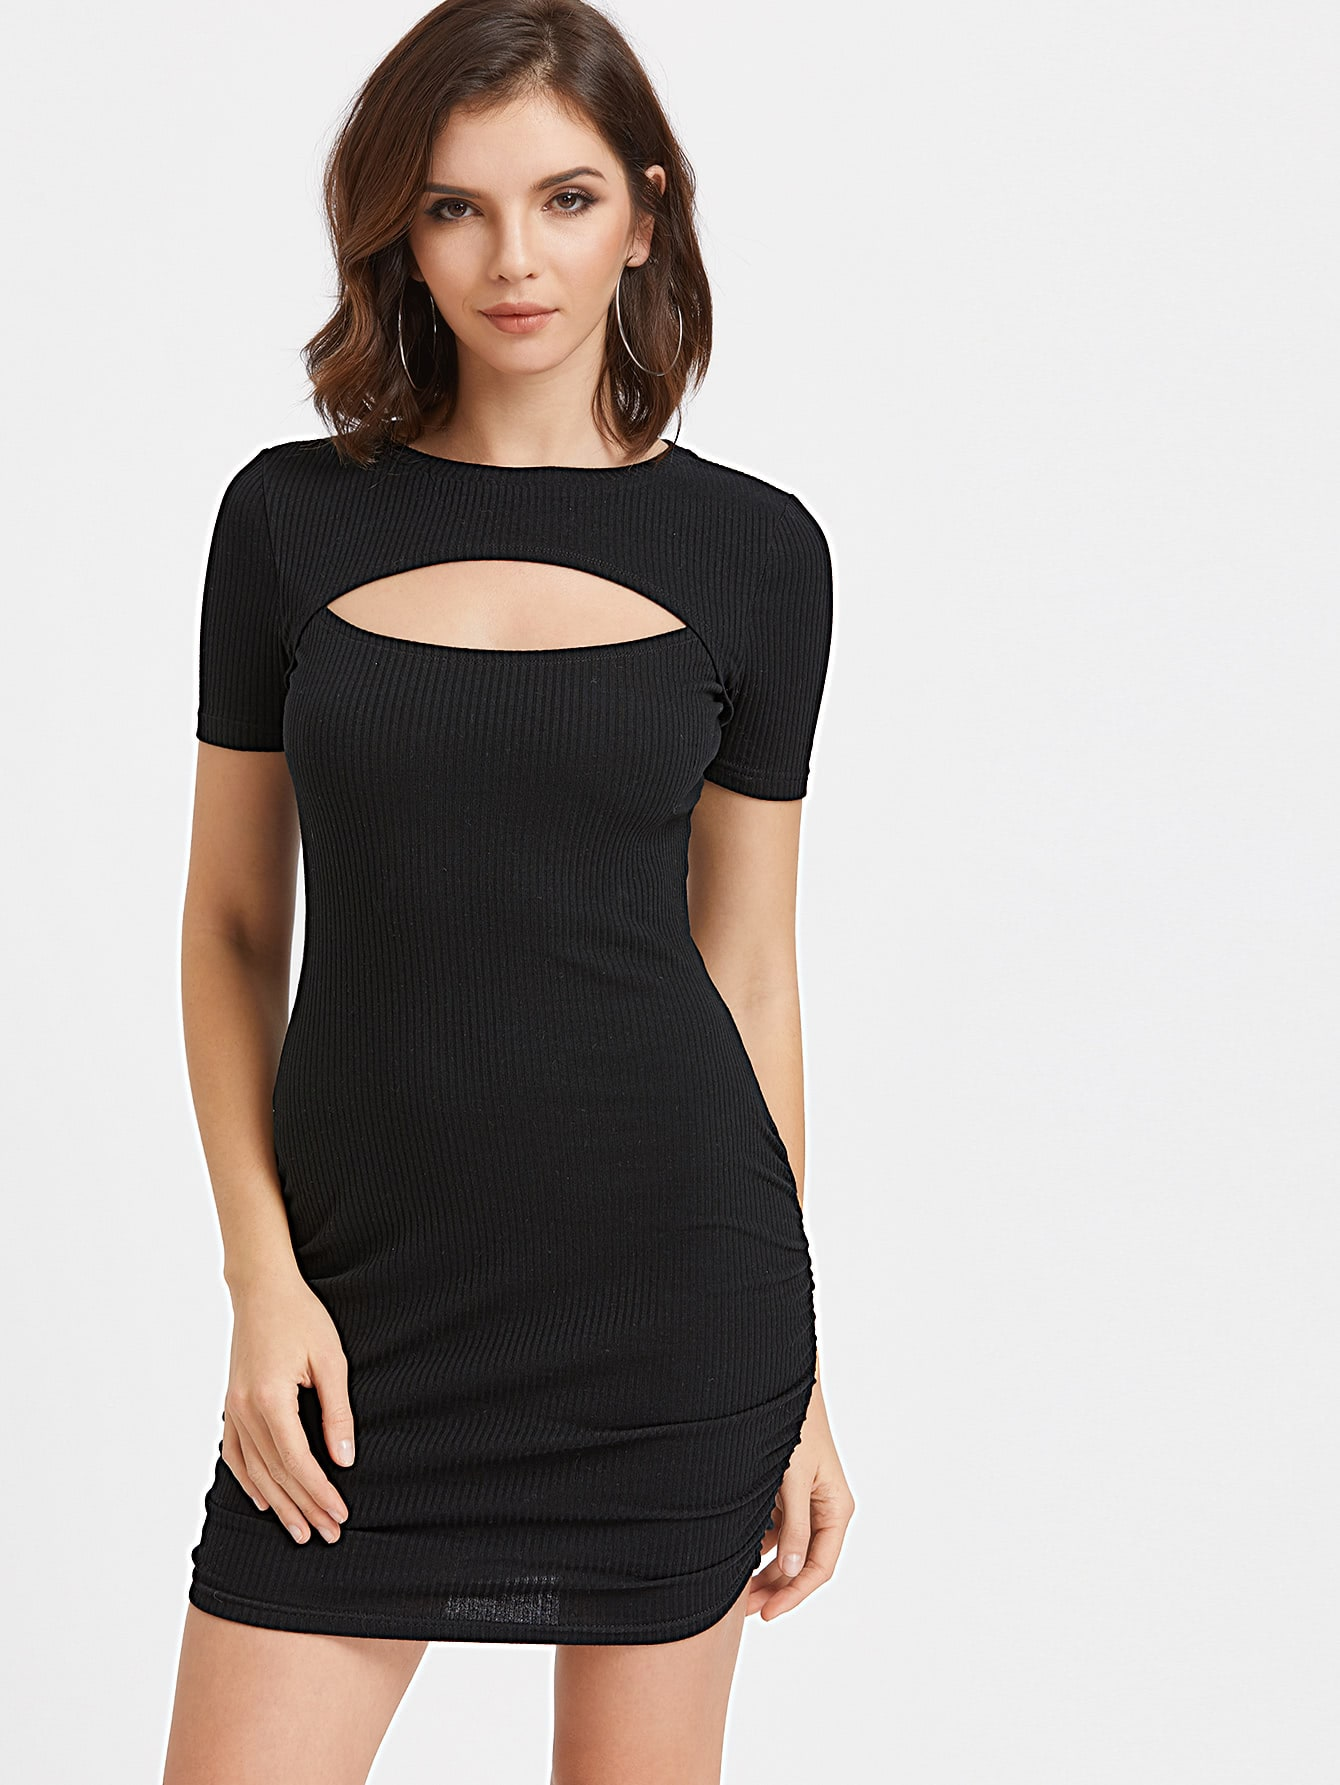 Cutout Chest Ruched Side Ribbed Bodycon Dress dress170310708